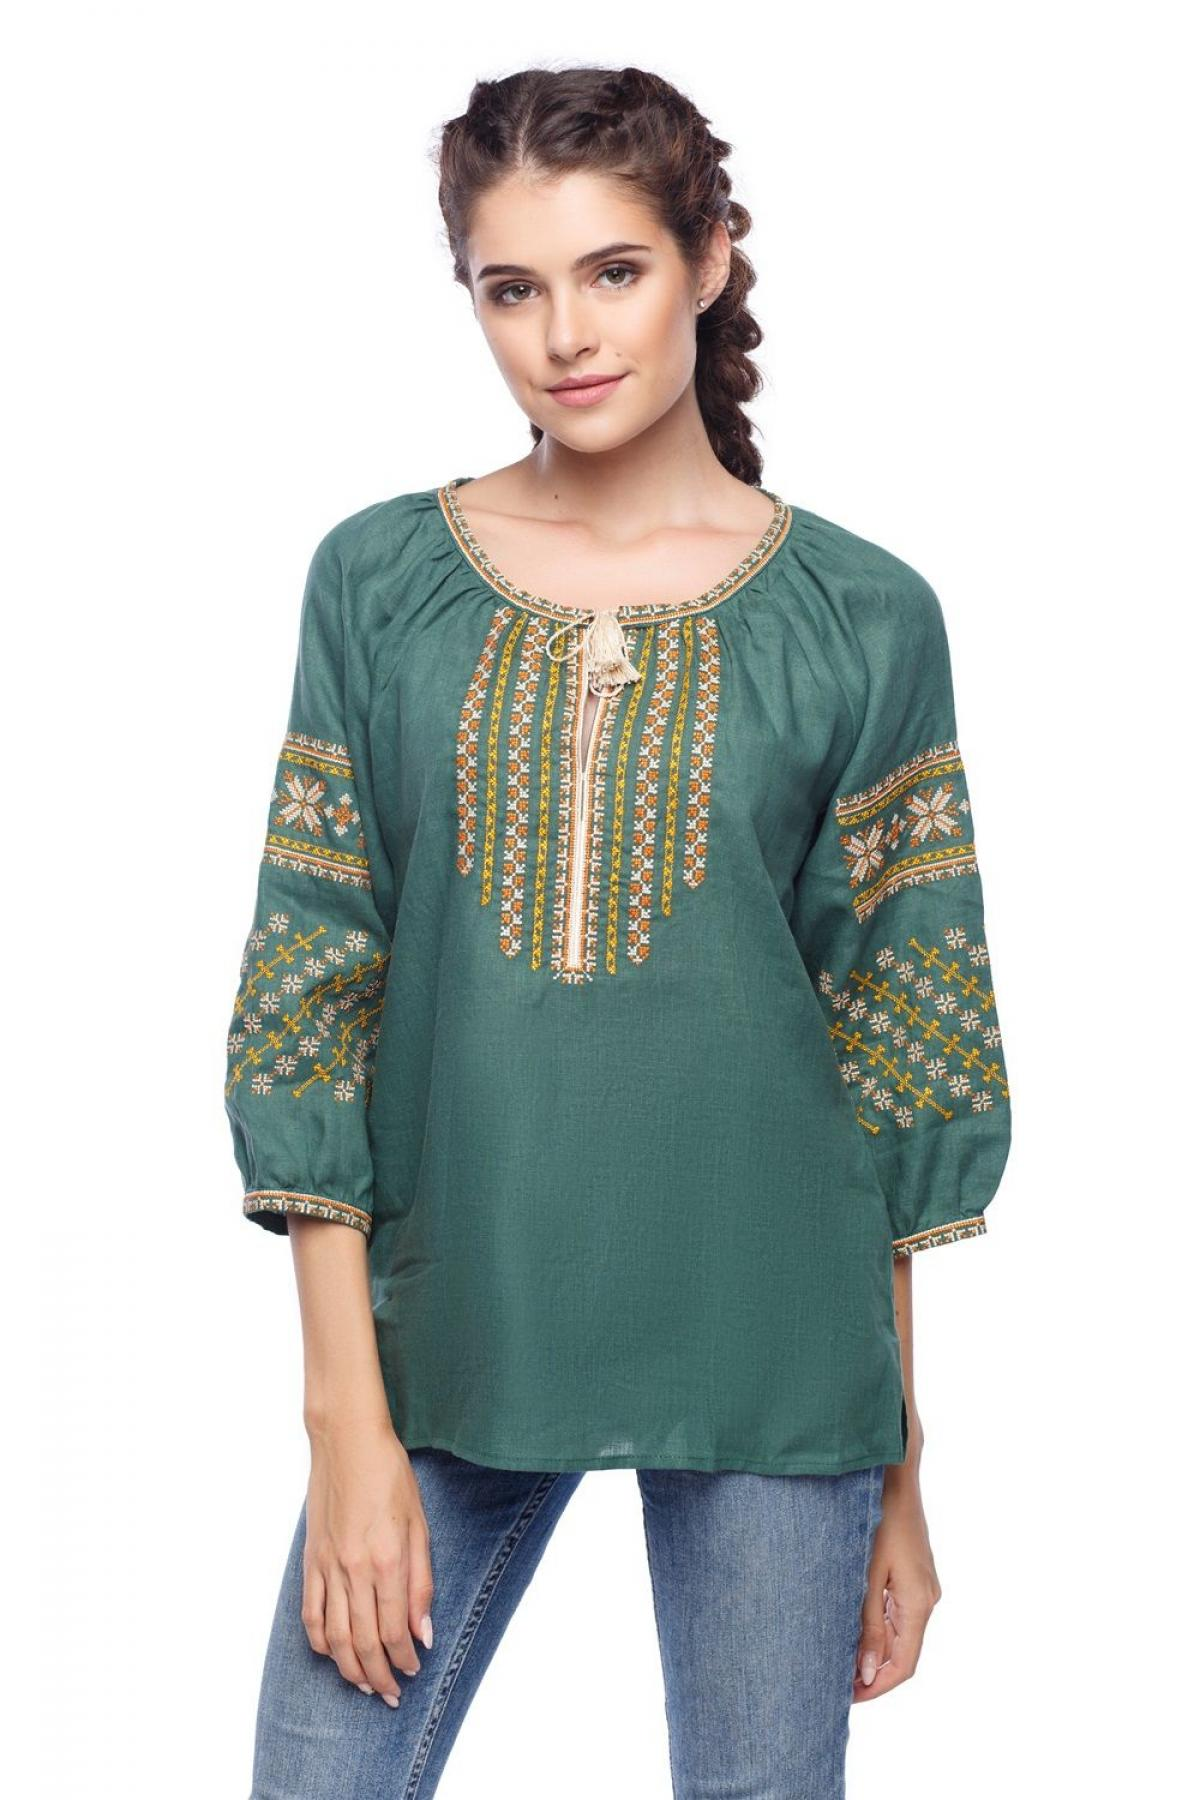 Green embroidered shirt with 3/4 sleeves